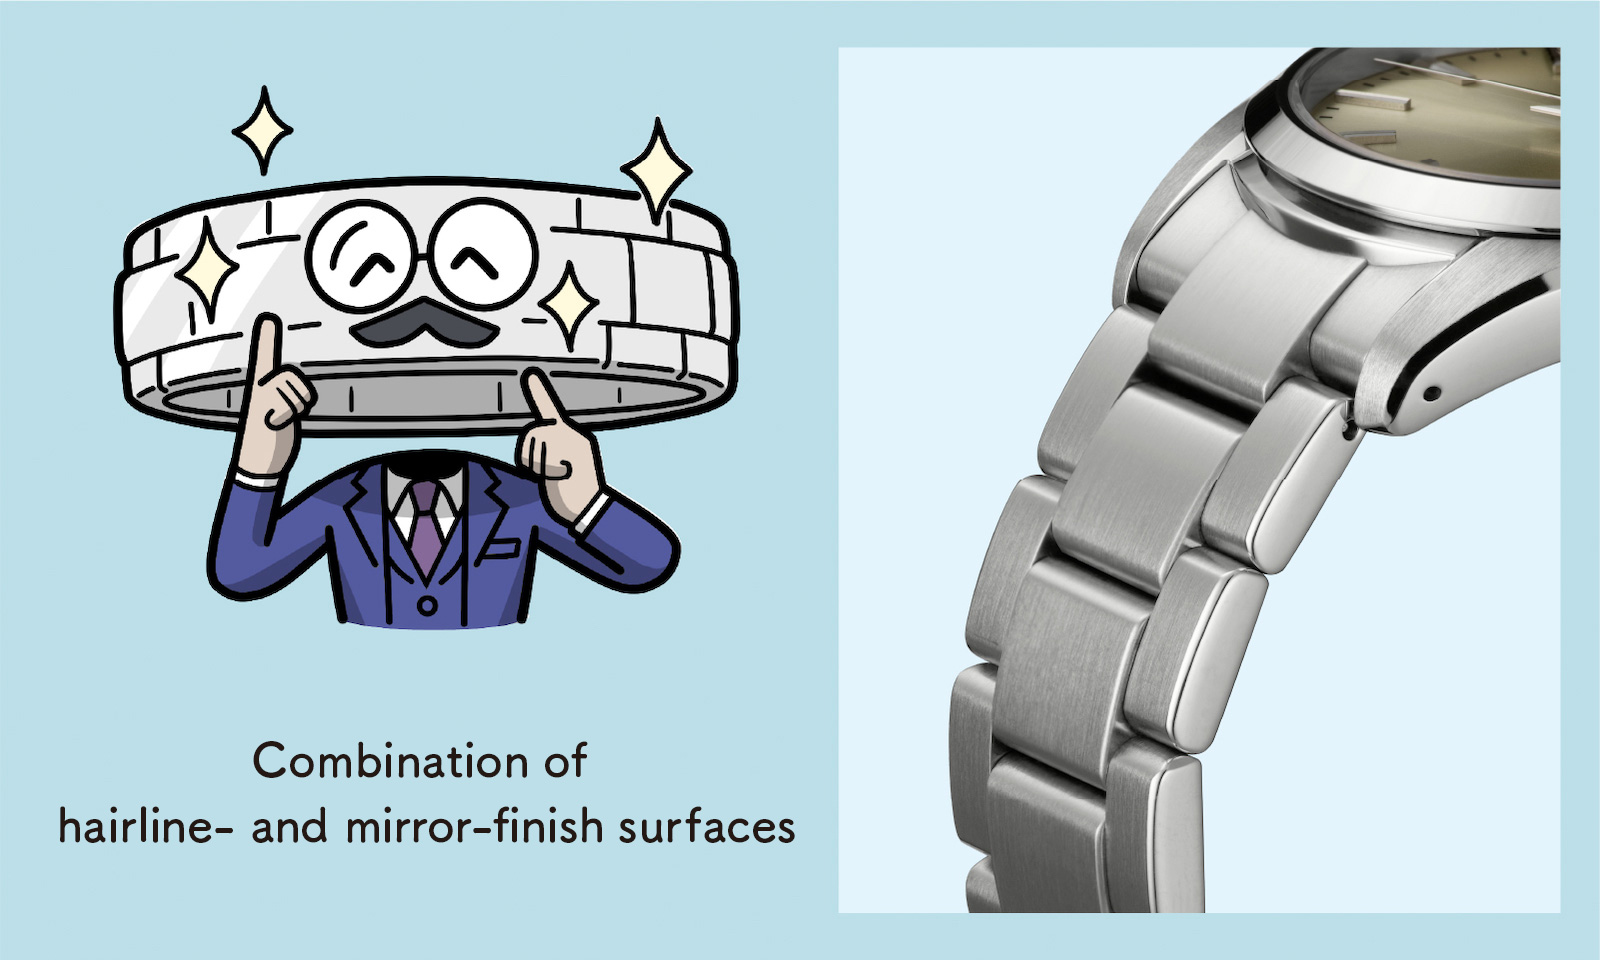 Combination of hairline- and mirror-finish surfaces (Enlarged photo of the bracelet)